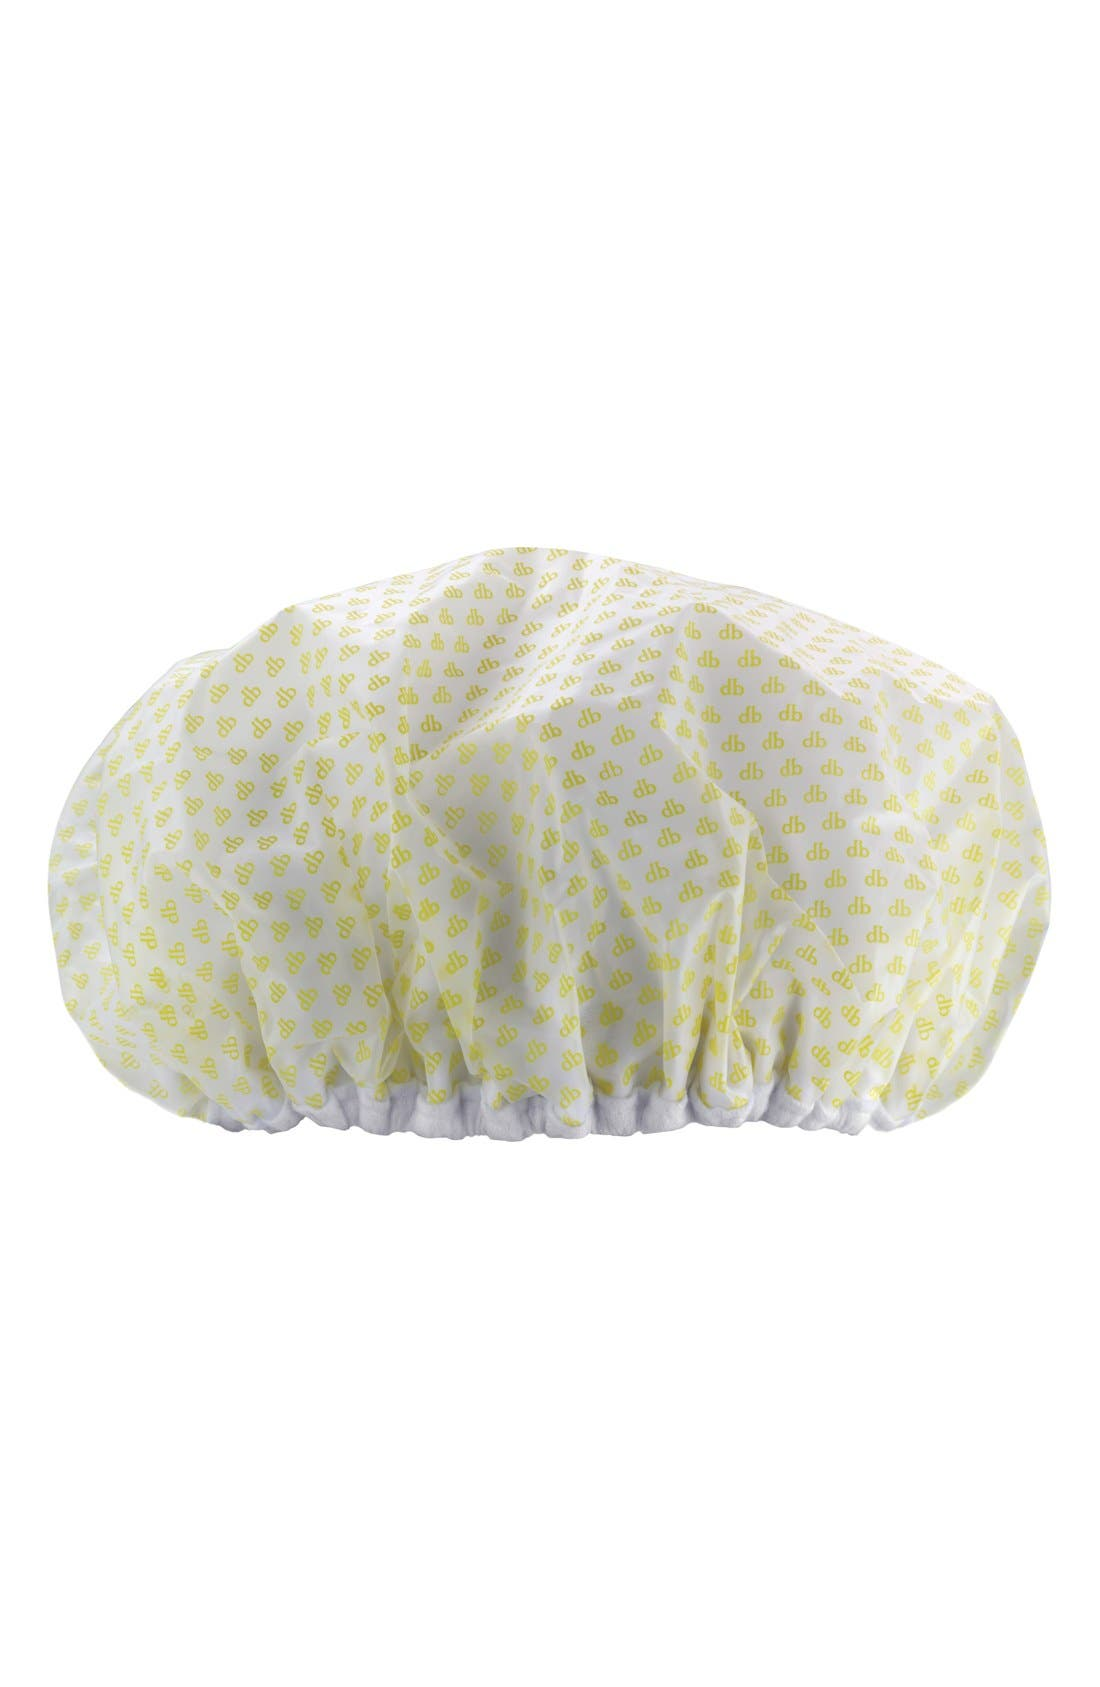 DRYBAR,                             The Morning After Shower Cap,                             Main thumbnail 1, color,                             NO COLOR